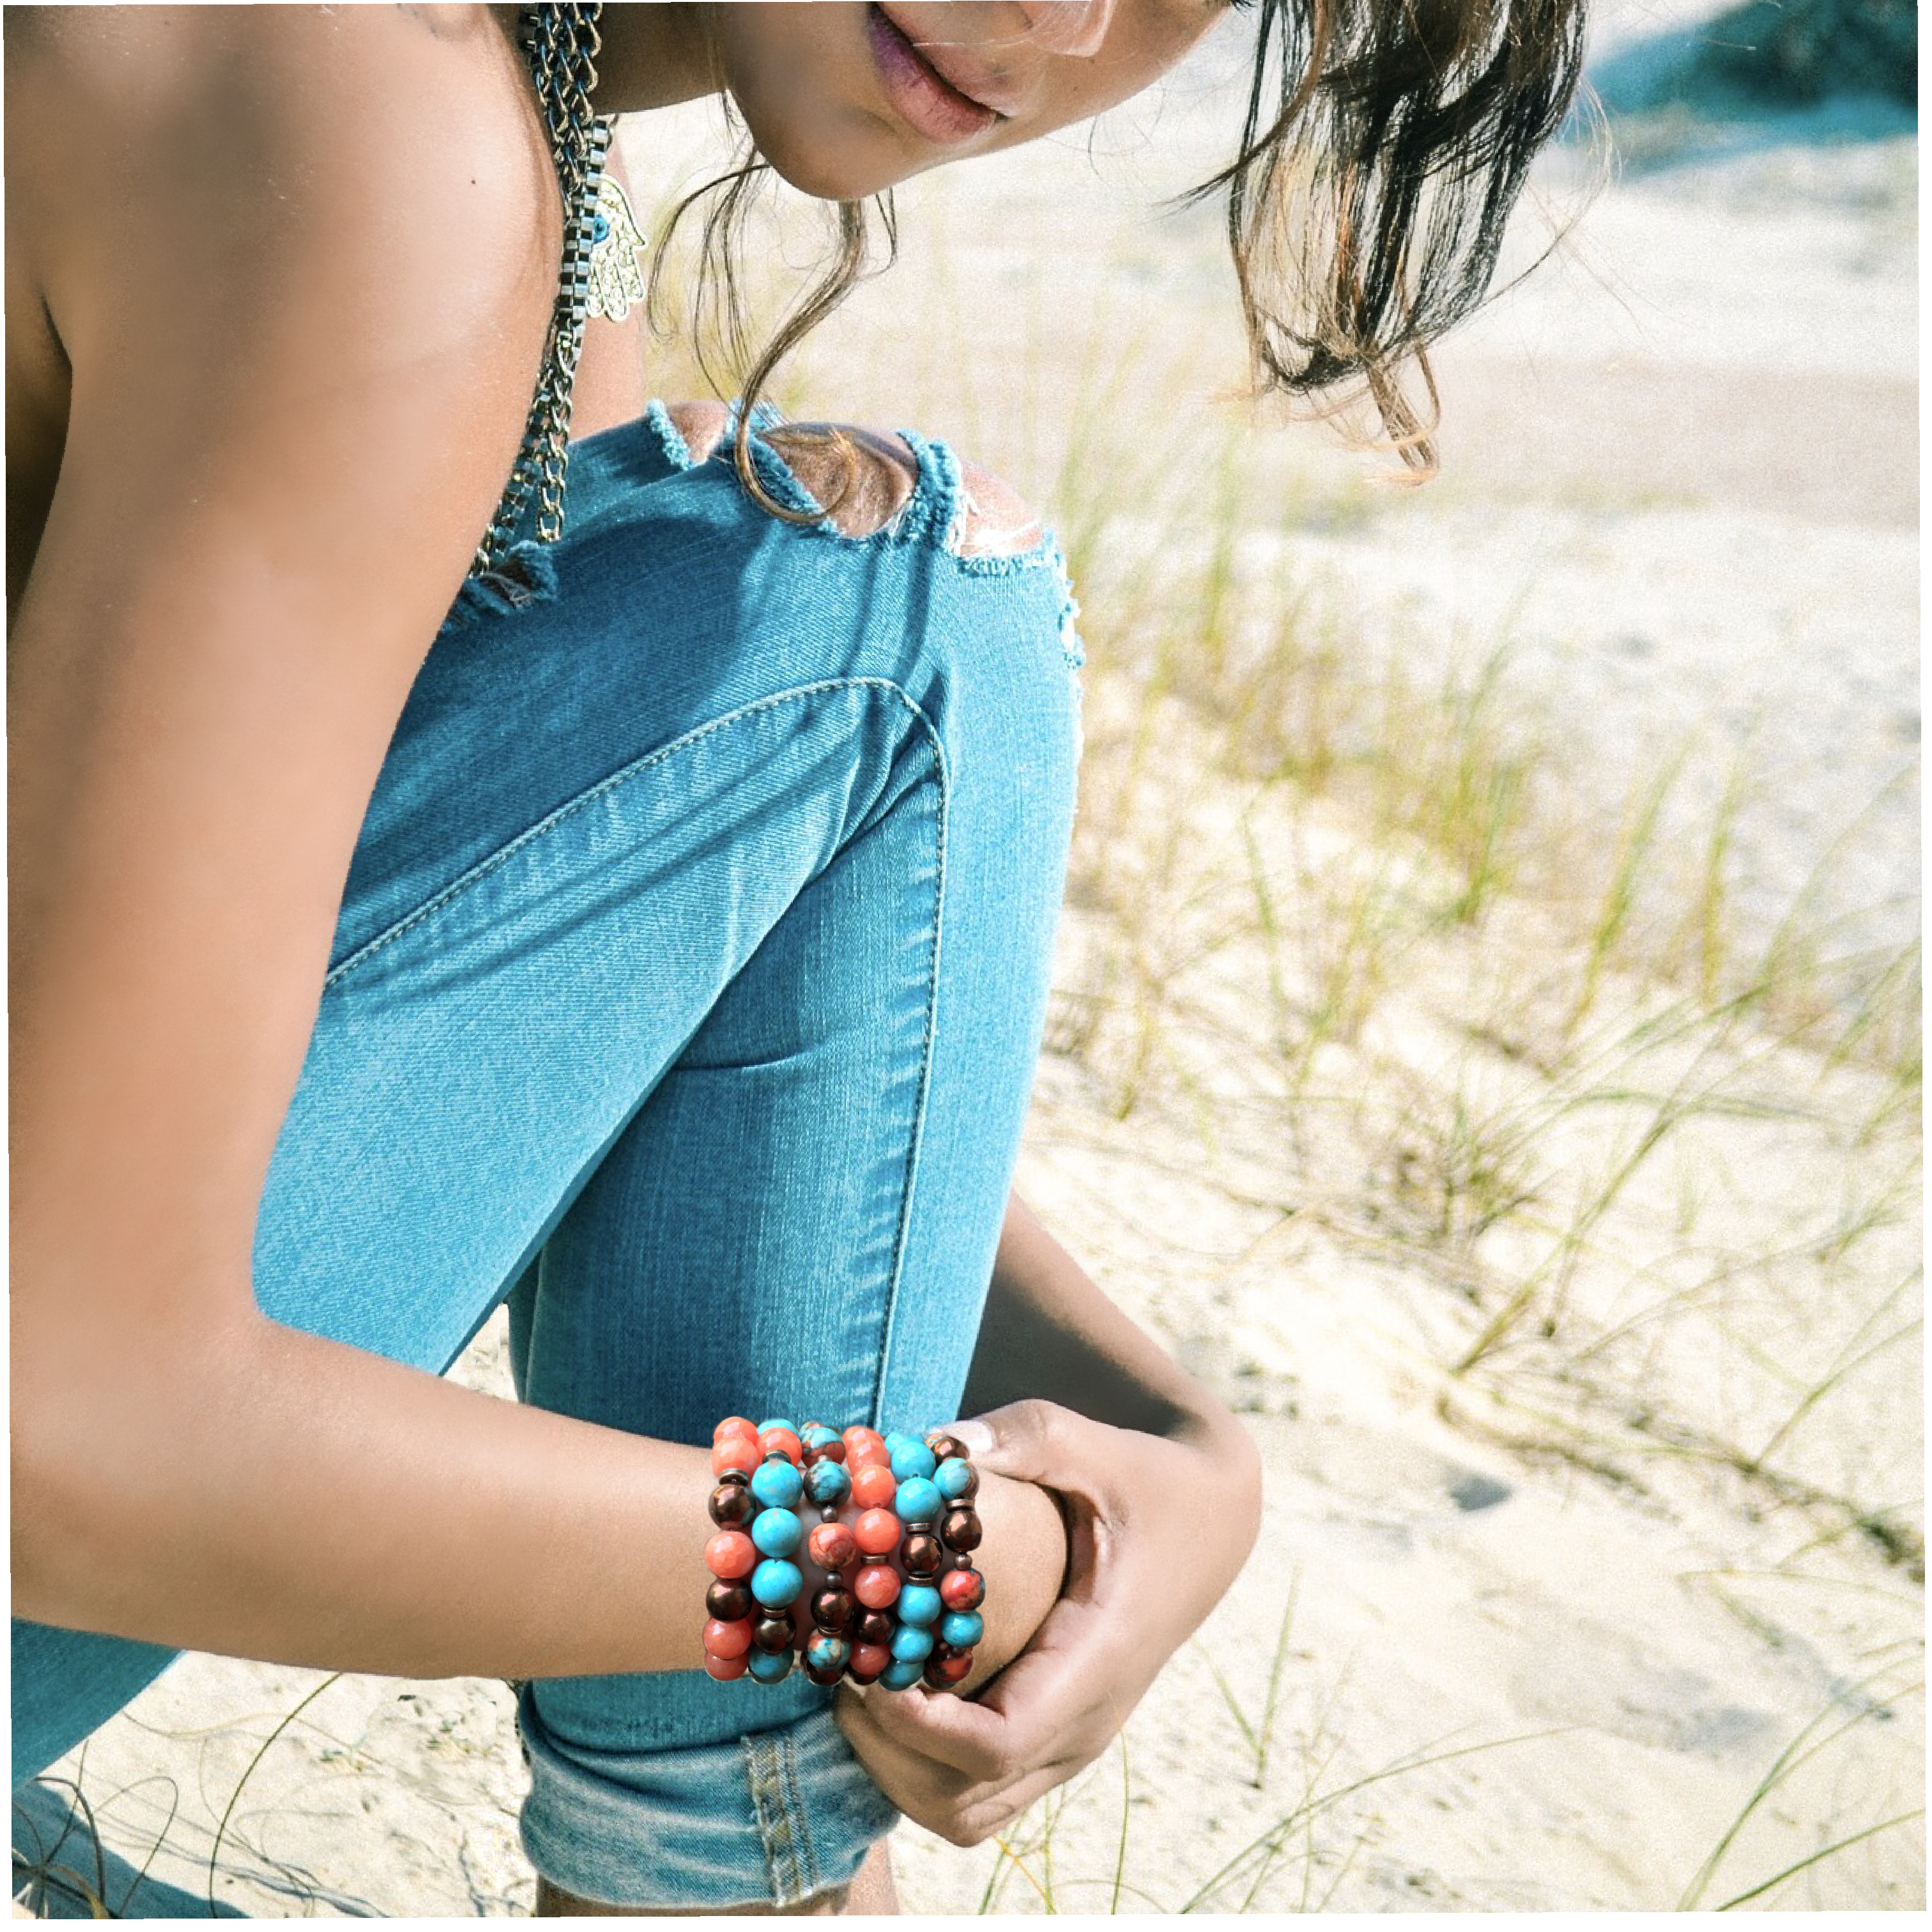 Semi Precious stones in Turquoise, Sun Stone, Copper, Apricot and Bronze. Part of the Denim Collection from Cactus Blues Shop the look by clicking on the photo Boho Style, Southwest Style, Island Ready